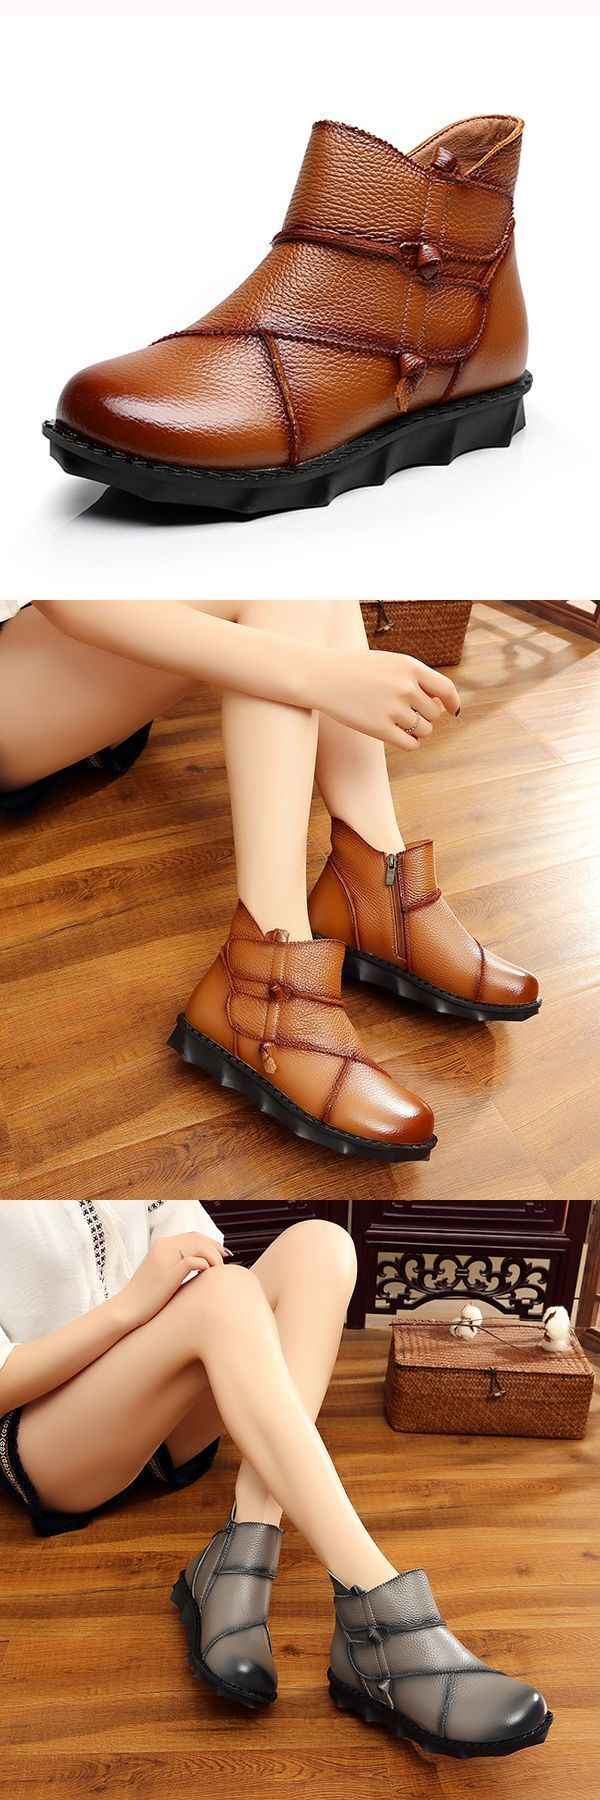 Genuine leather women comfortable sofe sole zipper ankle short boots boots uk #boots #etc #boots #vs #sneakers #g.bootsma #hindeloopen #r #bootstrap #example